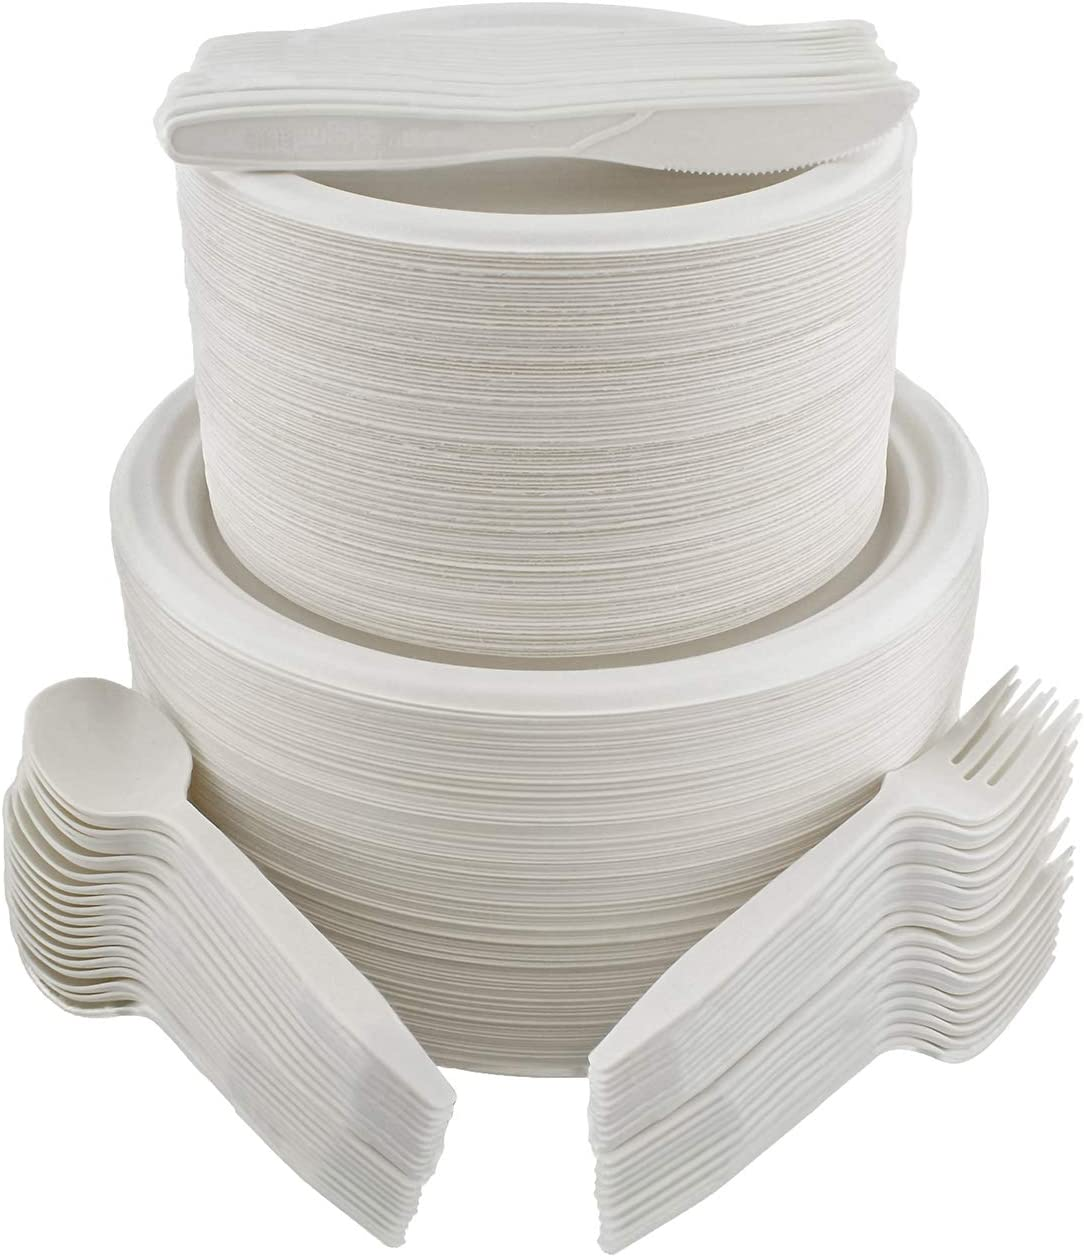 Spec7165 Disposable New 25% OFF popularity Dinnerware Set 500pc Guests for 100 Bright